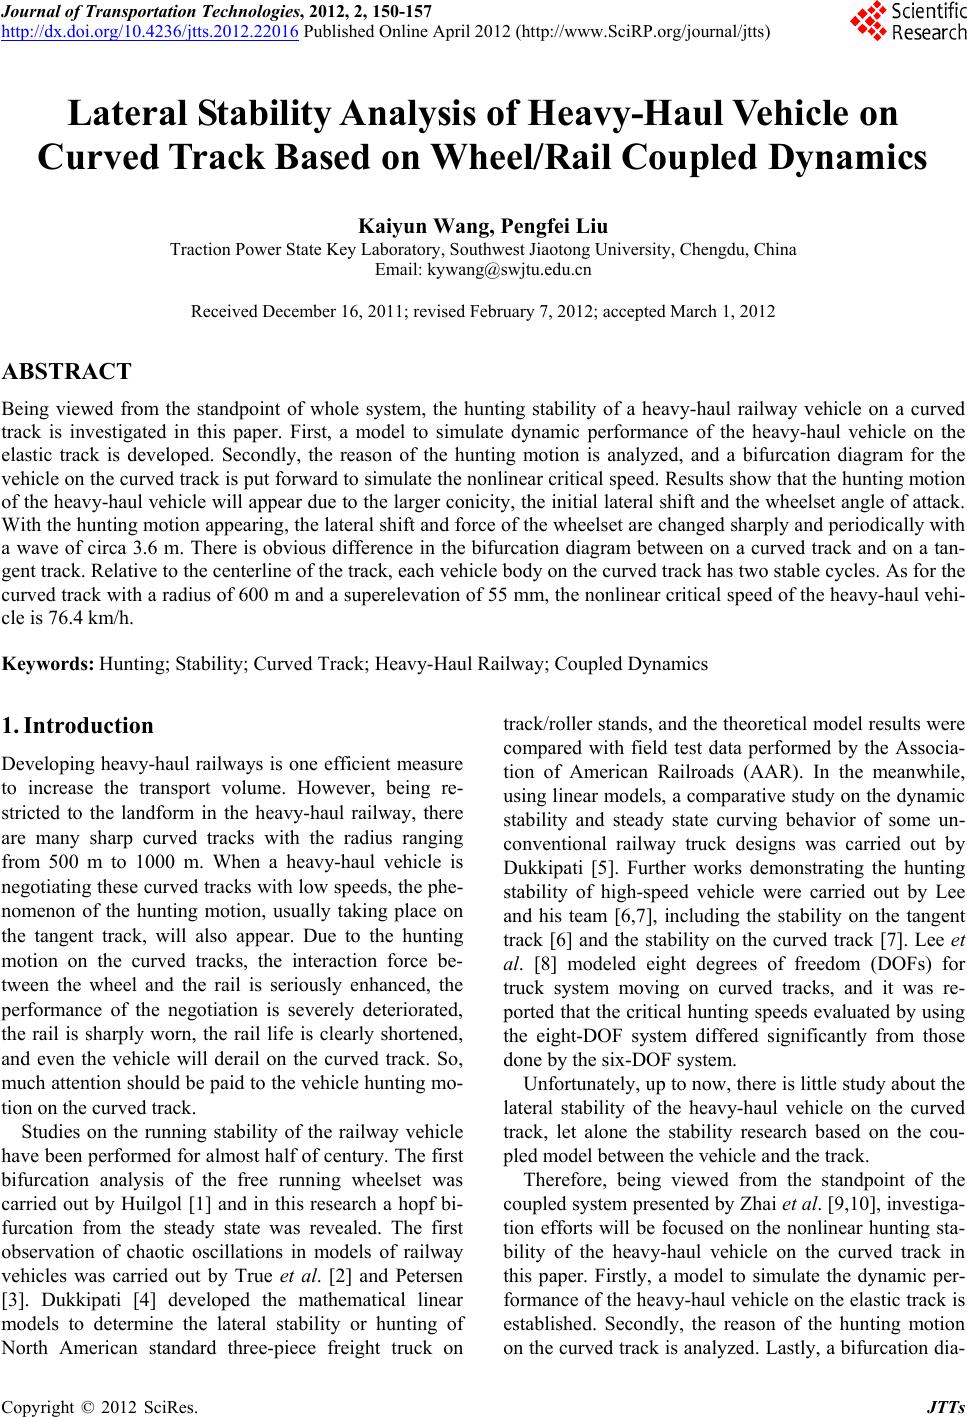 Heavy Vehicle Systems International Journal Of Vehicle Design